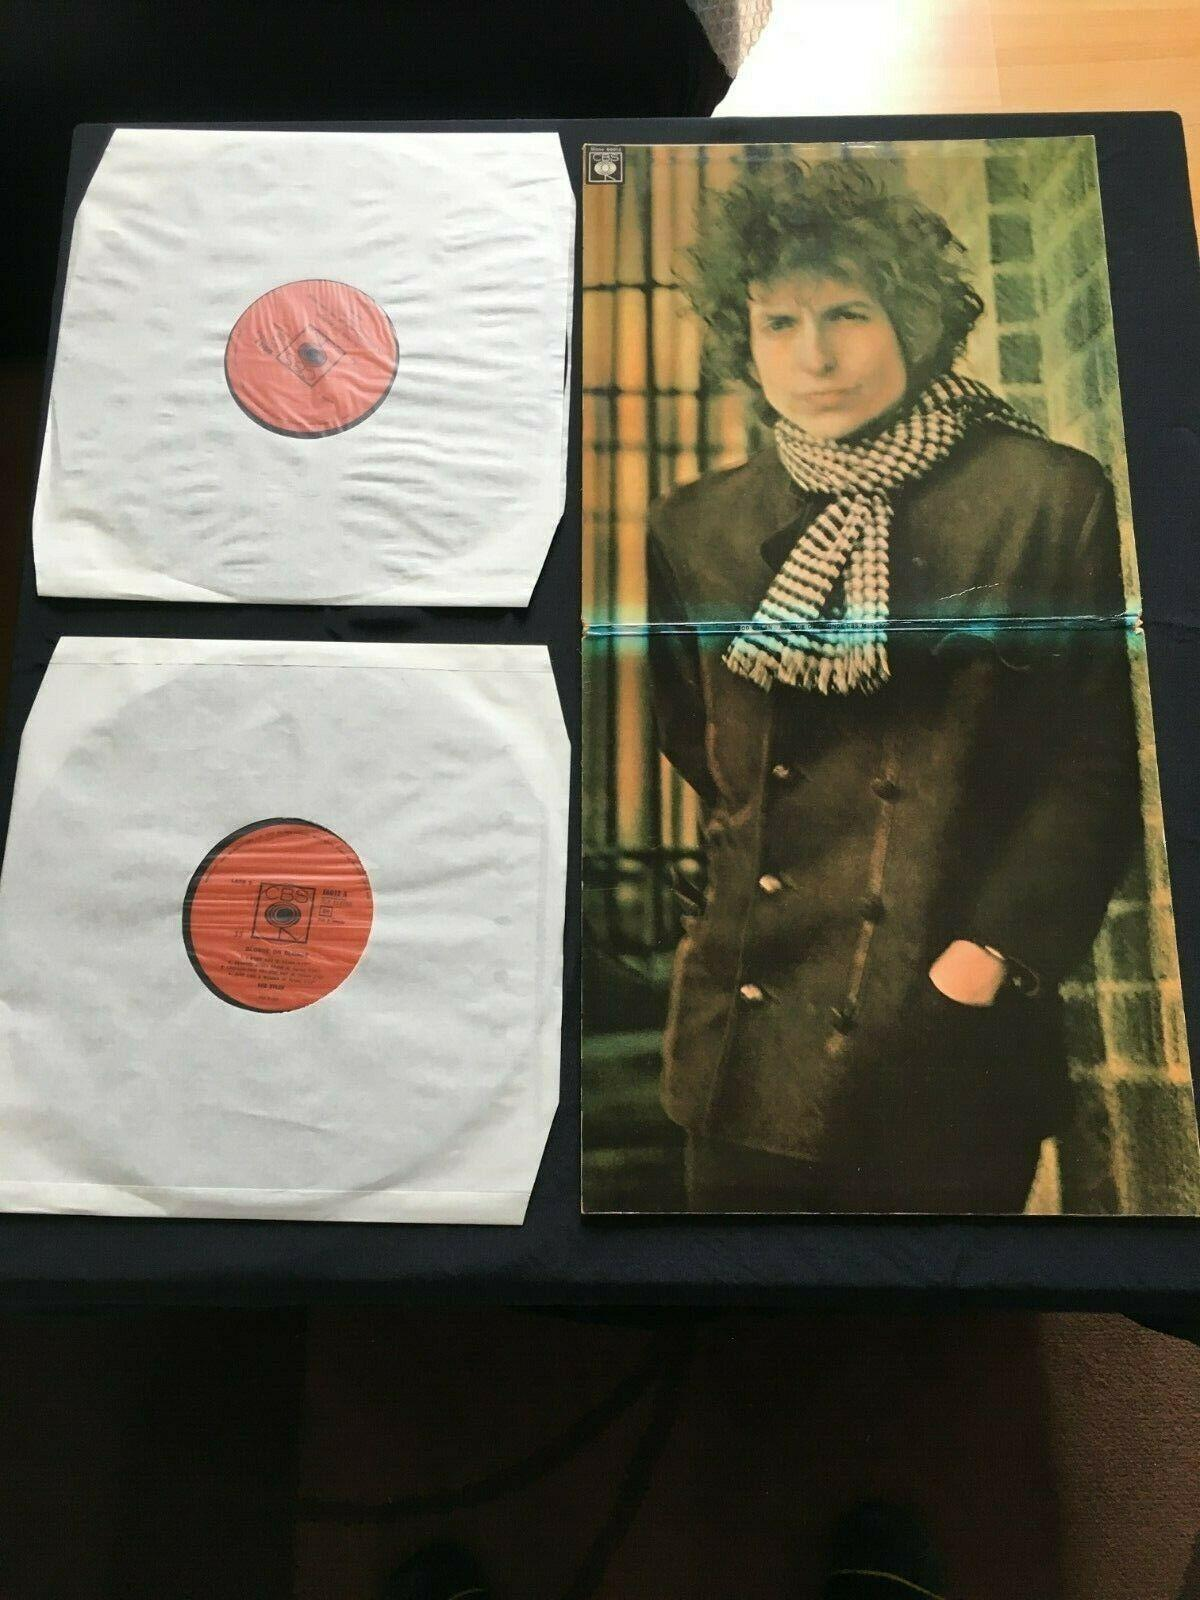 Bob Dylan Blonde on blonde 1st press Mono Italy Cardinale pic signed?